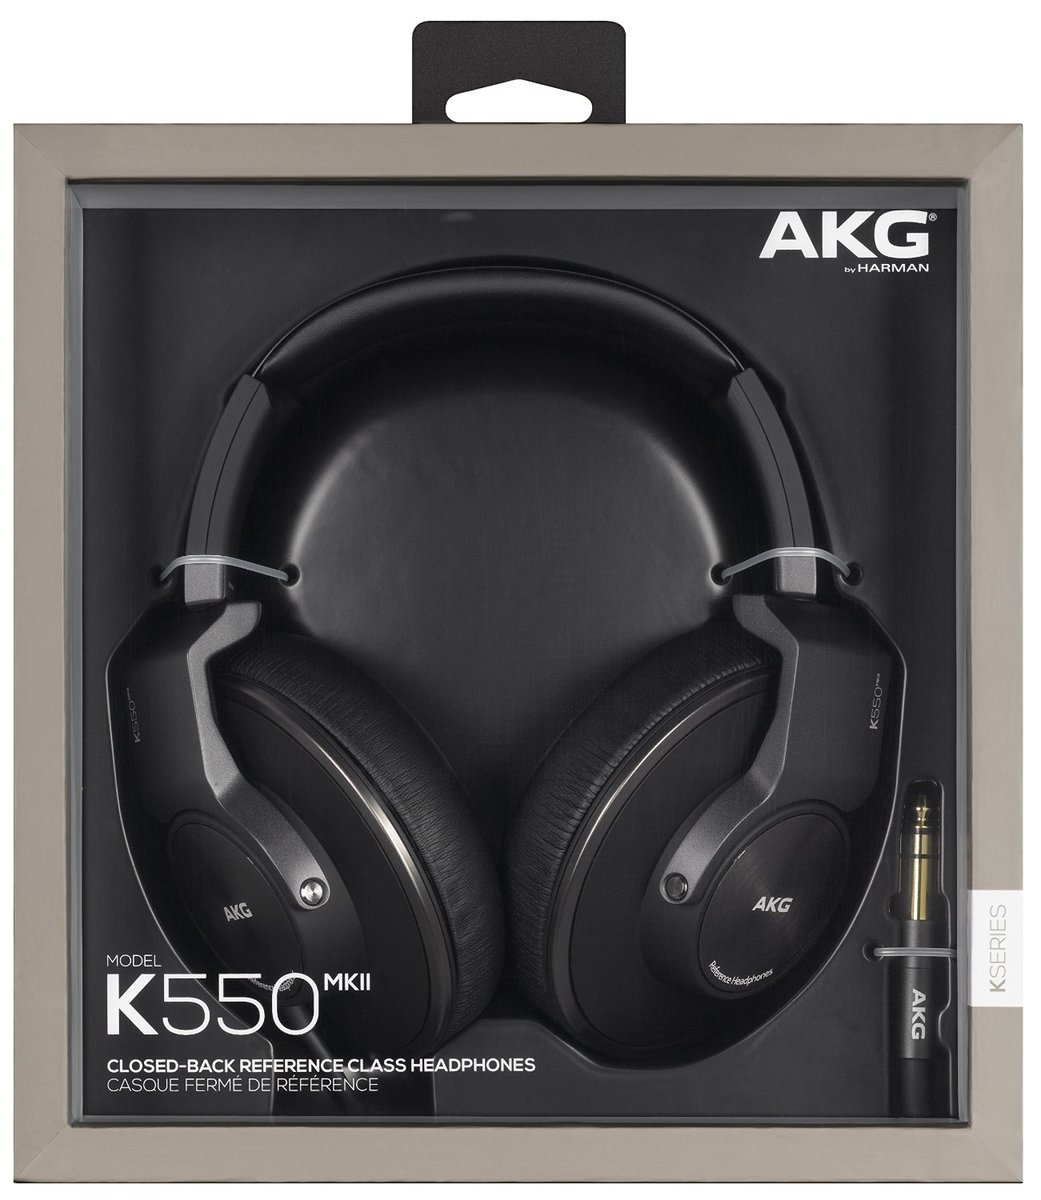 K550 MKII Premium Foldable Closed Back Over-Ear Headphones - Black